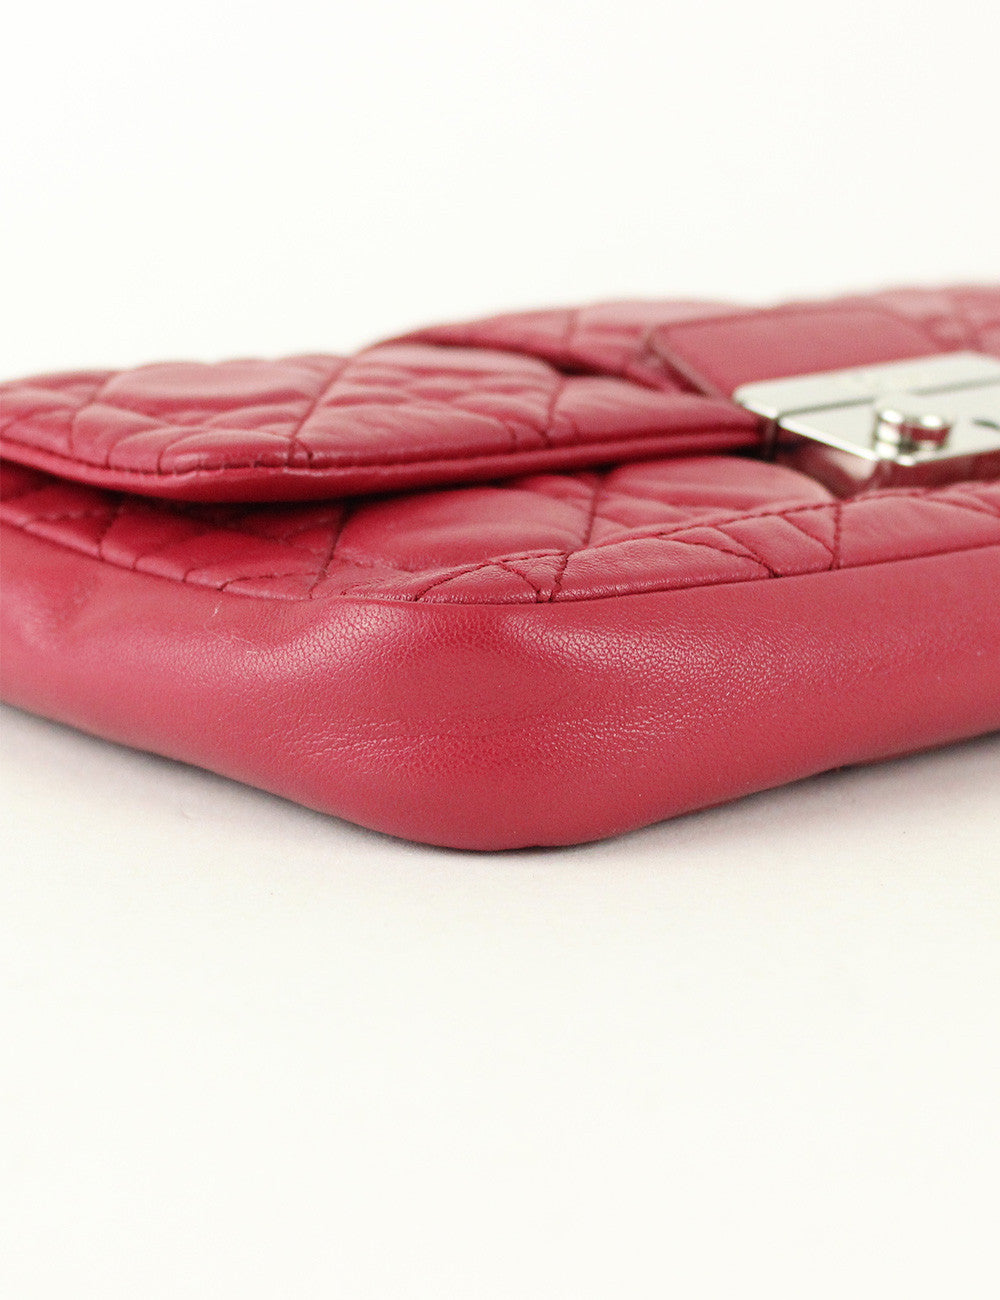 Christian Dior <br> Miss Dior Small Flap Bag (Missing Key)